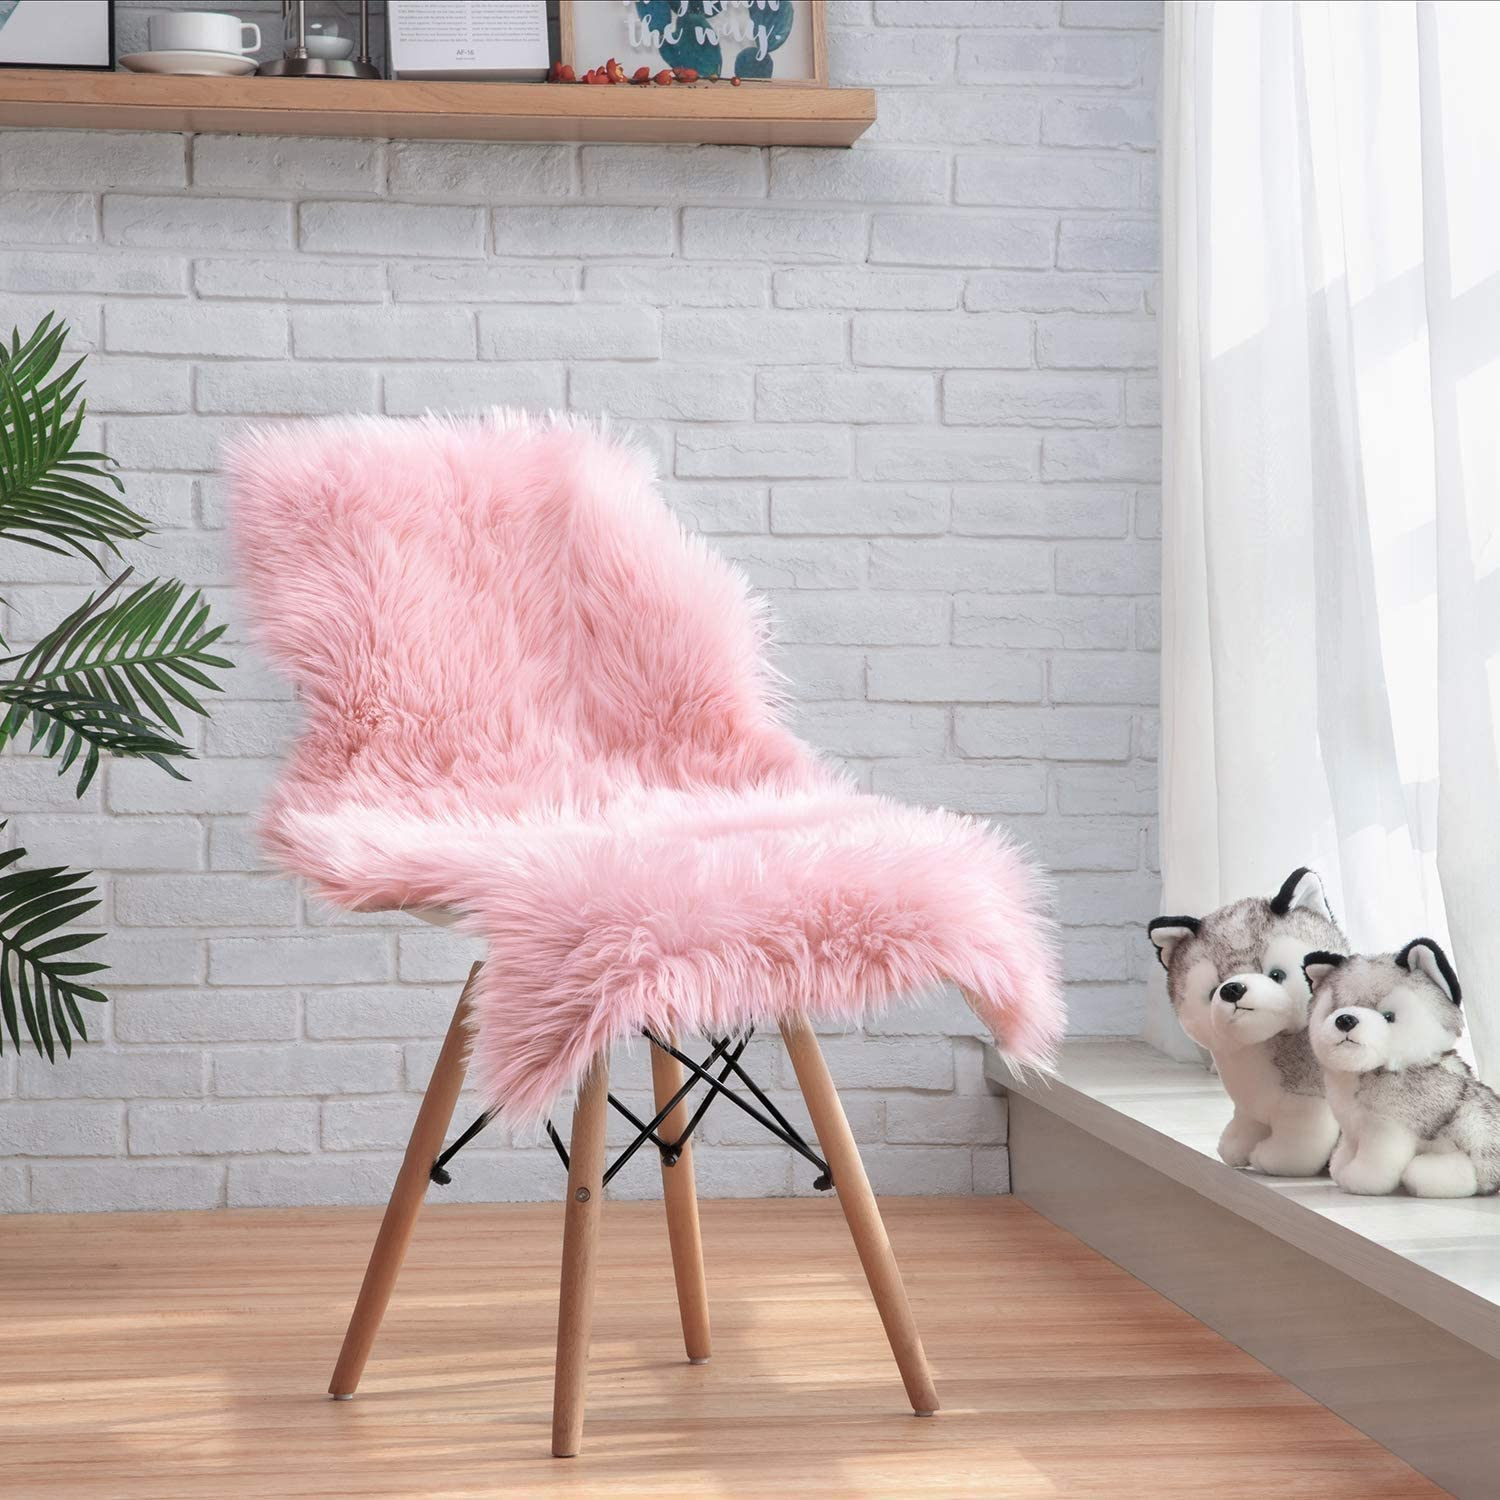 ZCZUOX Faux Sheepskin, Faux Fur Rug, Fluffy Rug for the Bedroom, Living  Room or Nursery, Furry Carpet or Throw for Chairs, Stools and Sofa (Pink,